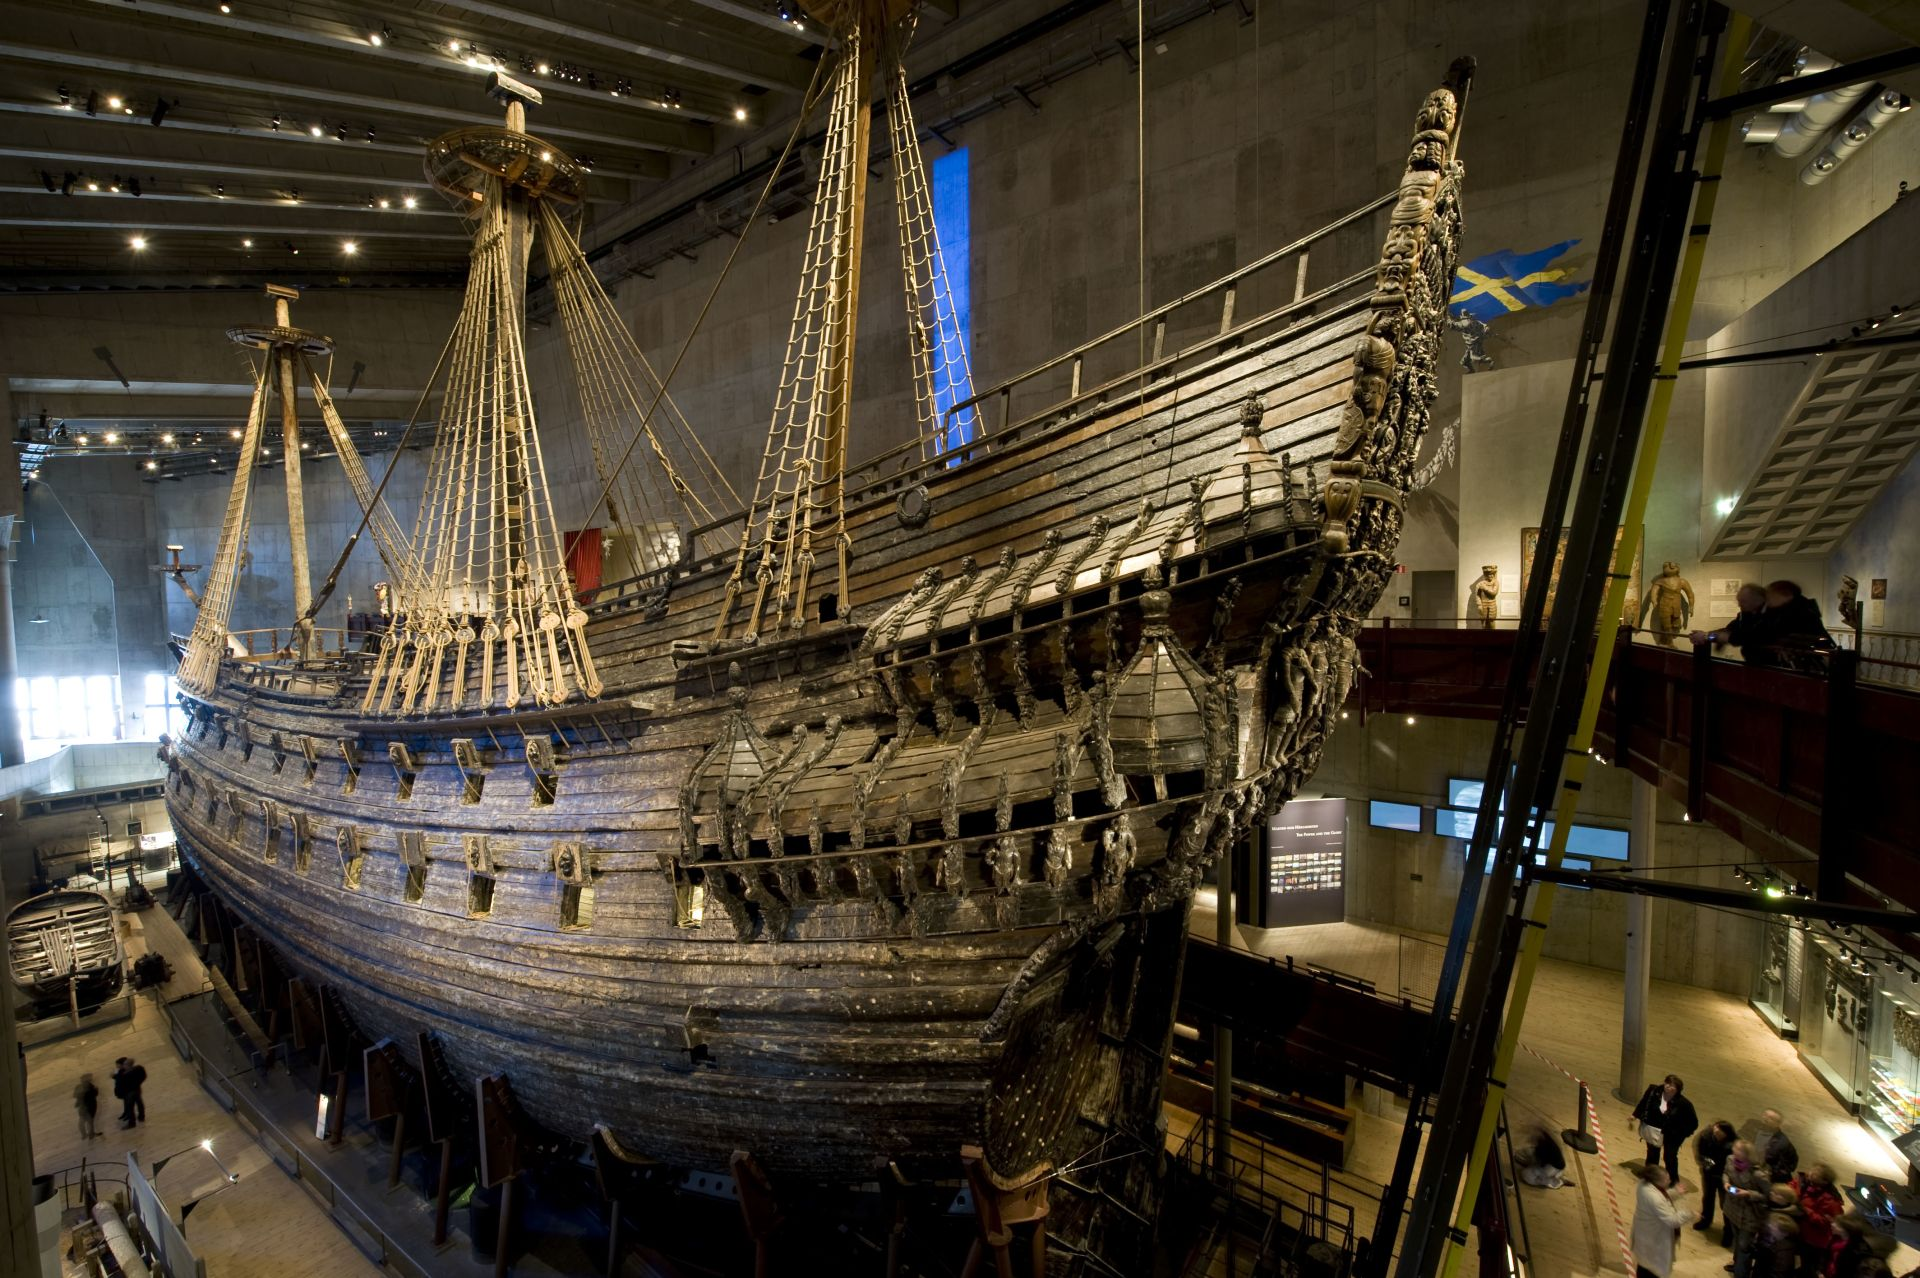 TO GO WITH AFP STORY BY FRANCOIS CAMPREDONThe Vasa is displayed at the Vasa Museum in Stockholm,on April 8, 2011.  Sweden's 17th century royal warship Vasa, which sank in 1628 and was brought to the surface three centuries later, on Thursday began undergoing a major refurbishment, museum officials said.  AFP PHOTO/JONATHAN NACKSTRAND